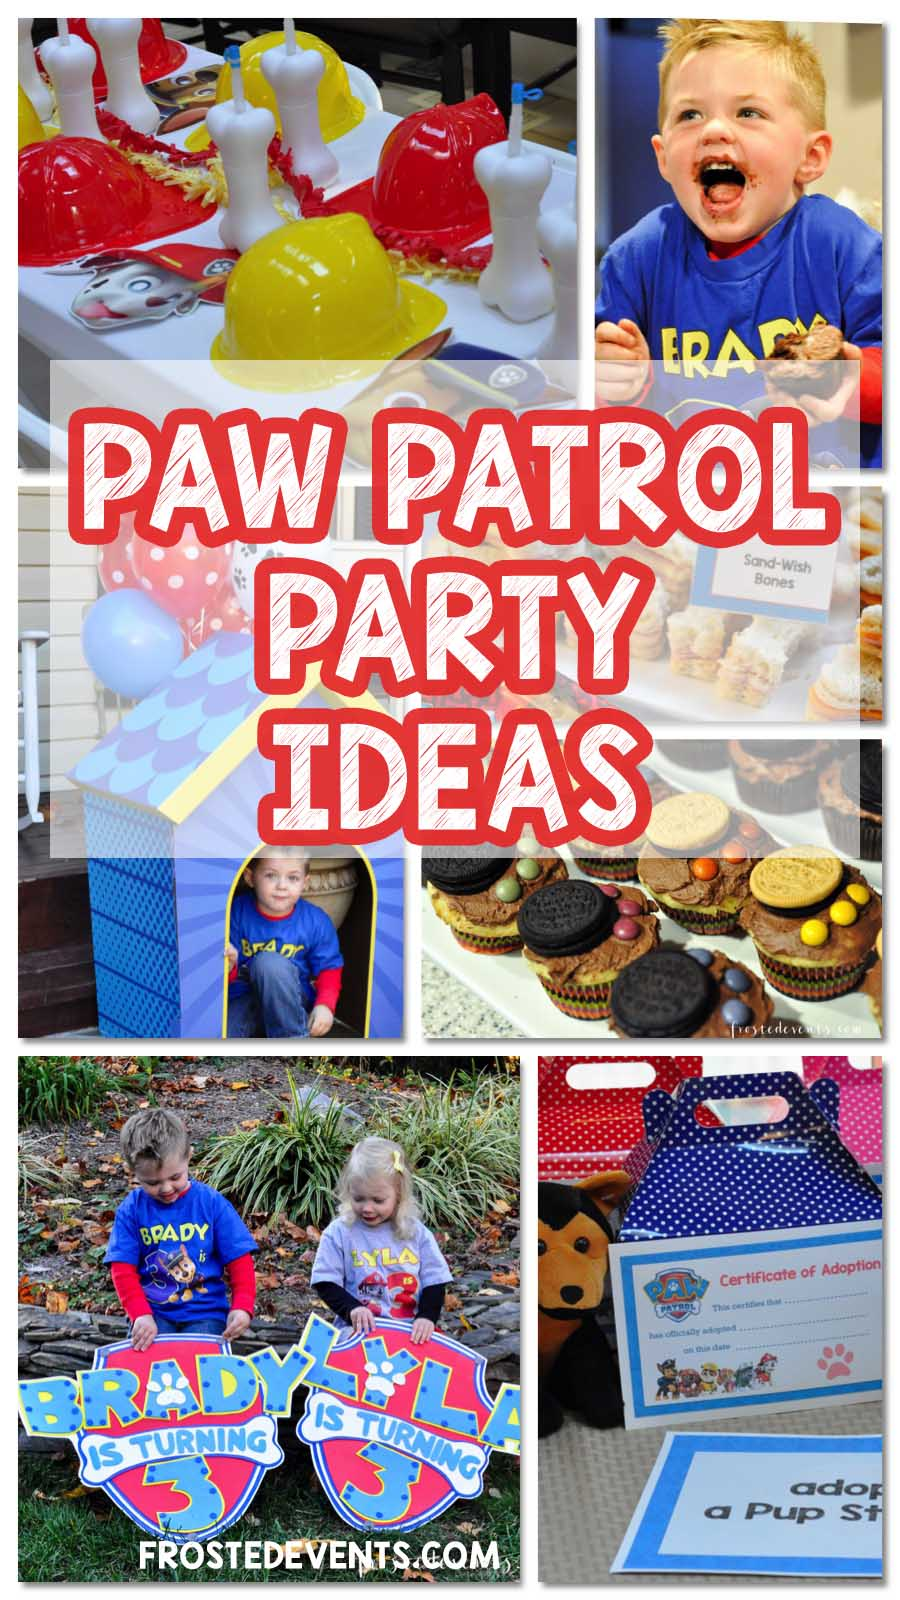 Paw Patrol Party Ideas Birthday Frostedevents Pinterest